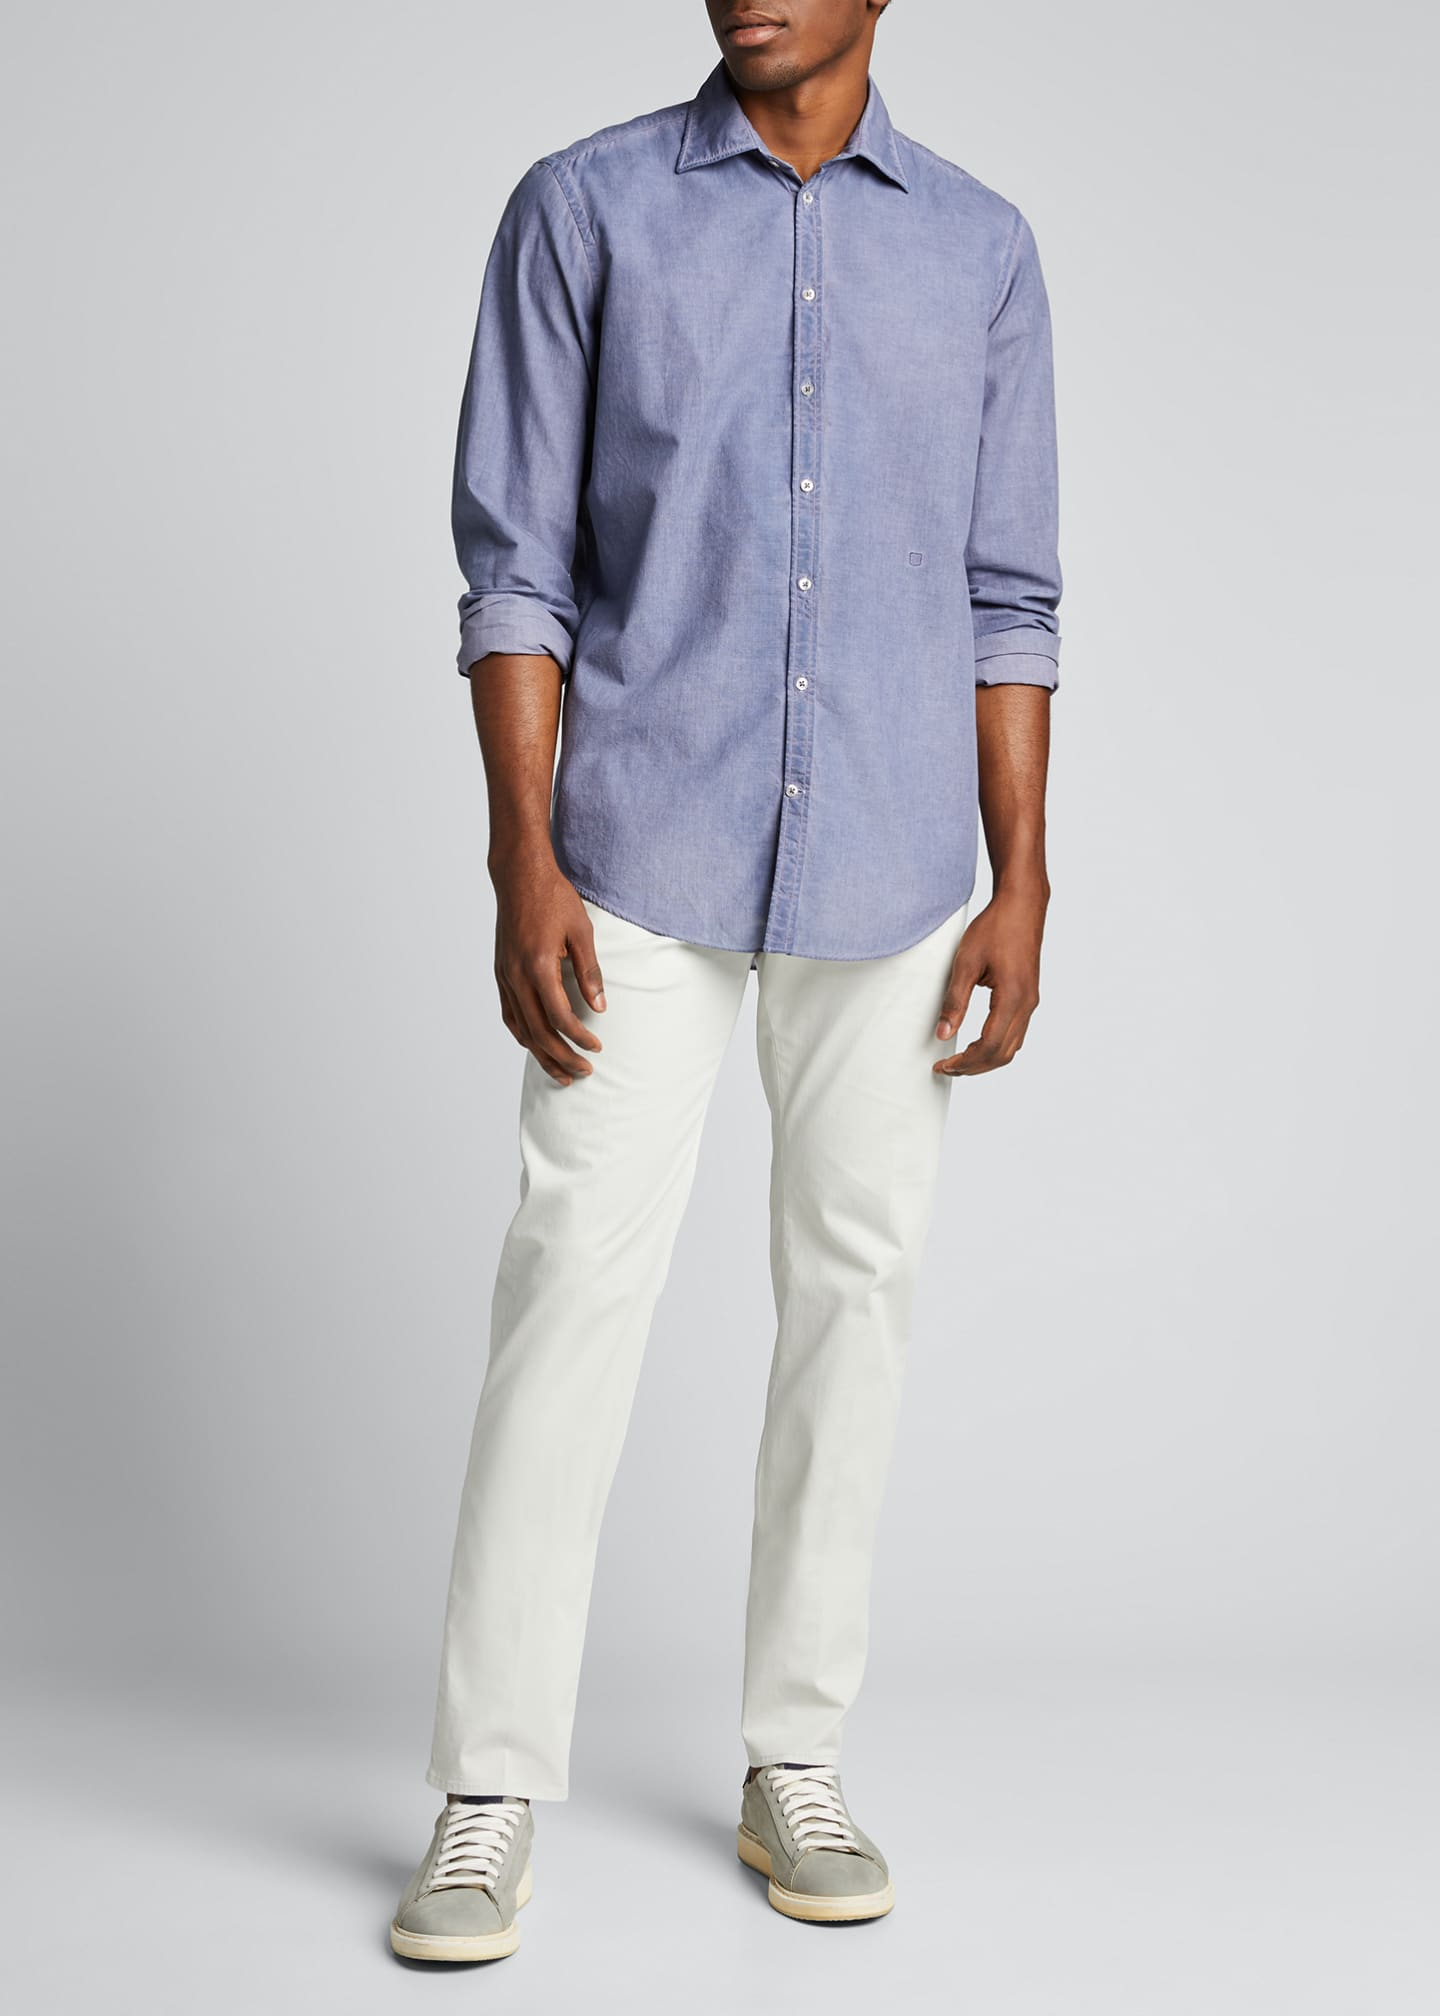 Image 1 of 5: Men's Garment Dye Stretch Poplin Pants